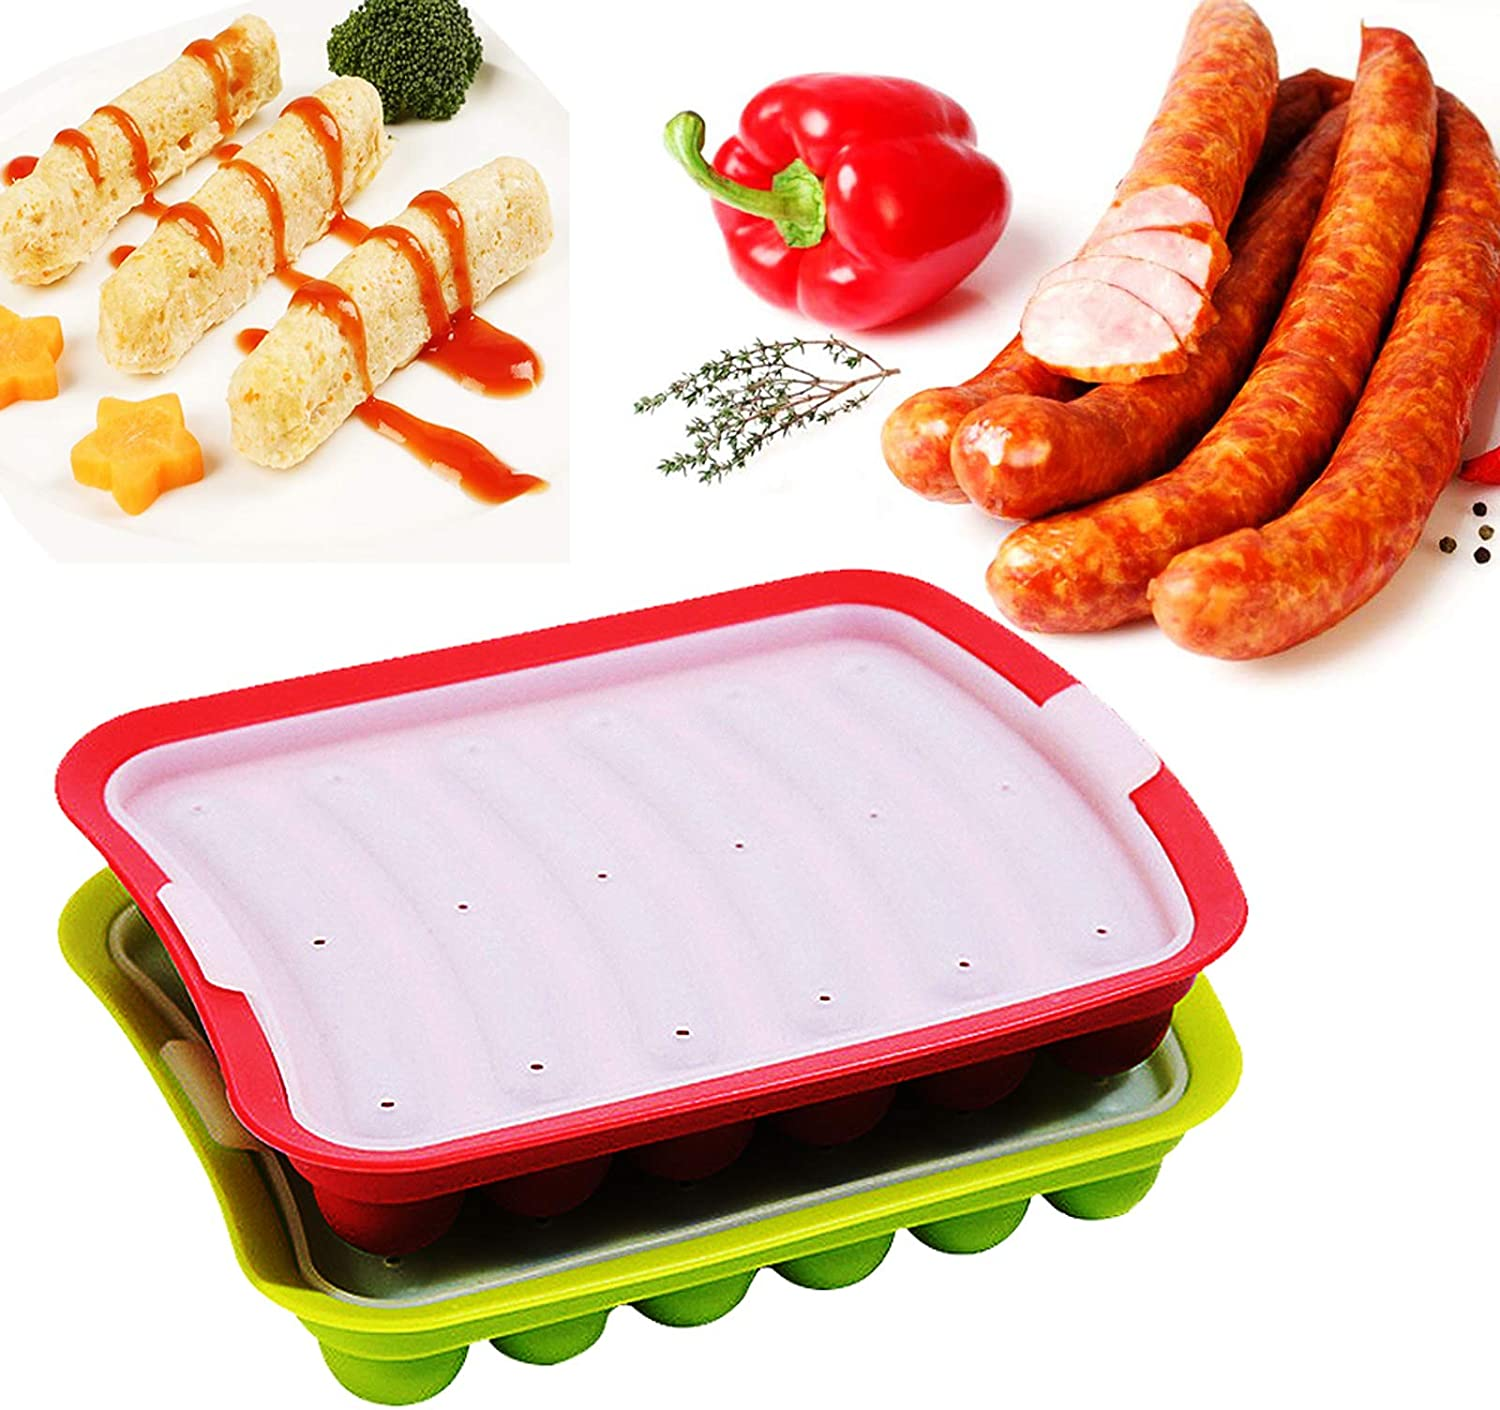 Silicone Sausage Mold Non-Stick, DIY Children's Hot Dogs Baking Mold for Egg Sausage and Baby's Supplementary Sausage Mold, lce Candy Jelly Chocolate Mould(Green + Red)